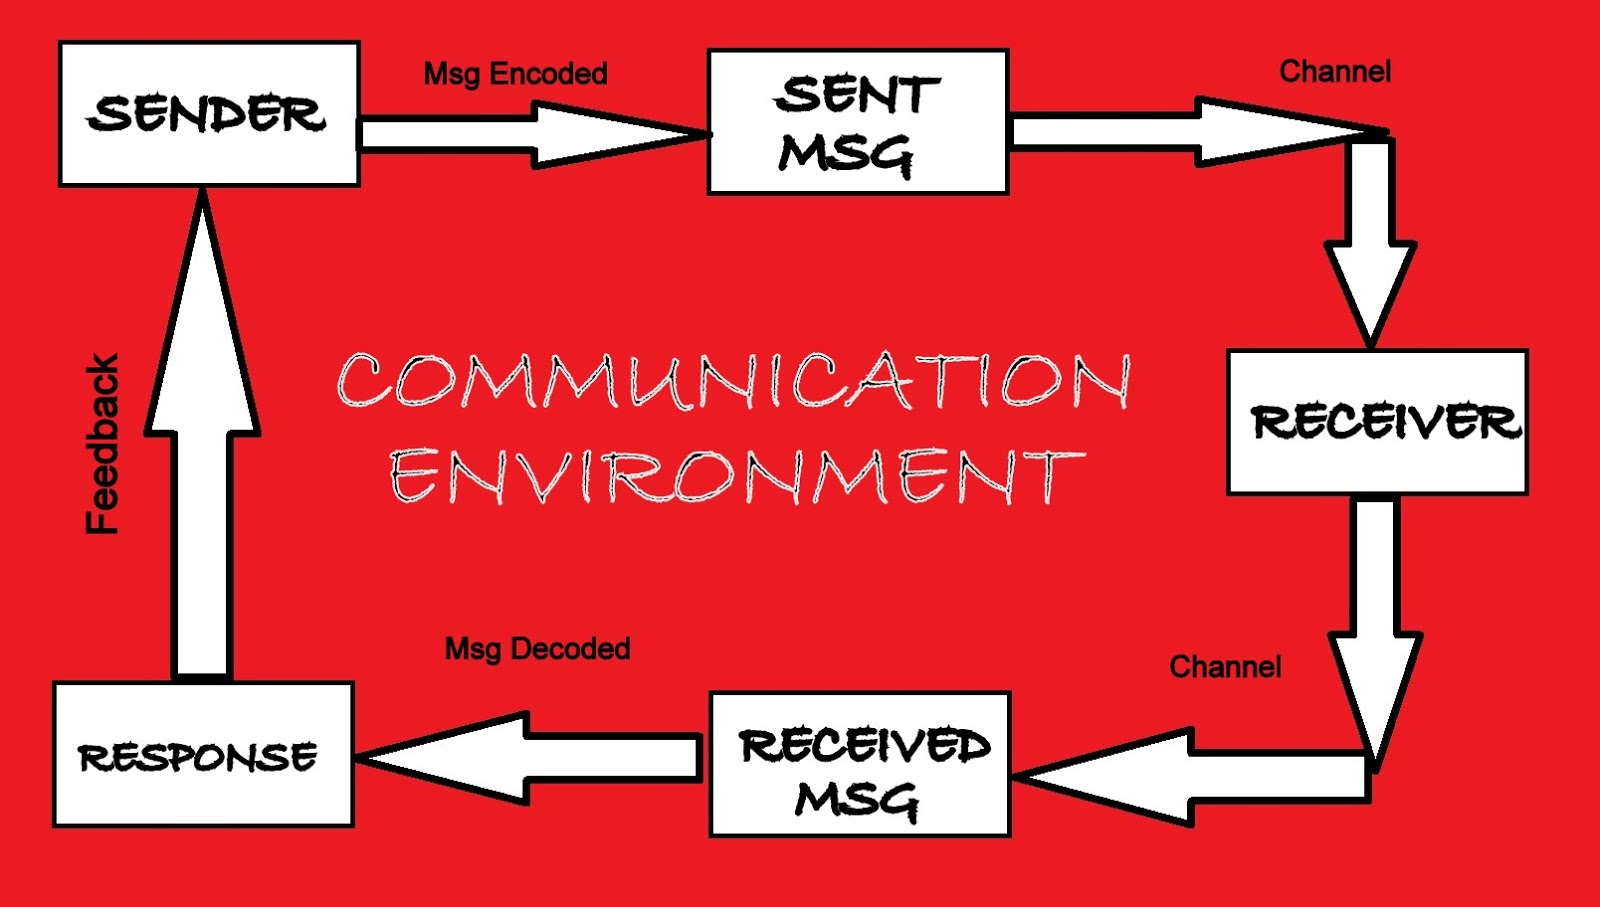 oral communication process If the medium is oral message recipients take the lead in concluding the communication process by crafting a response to the message.